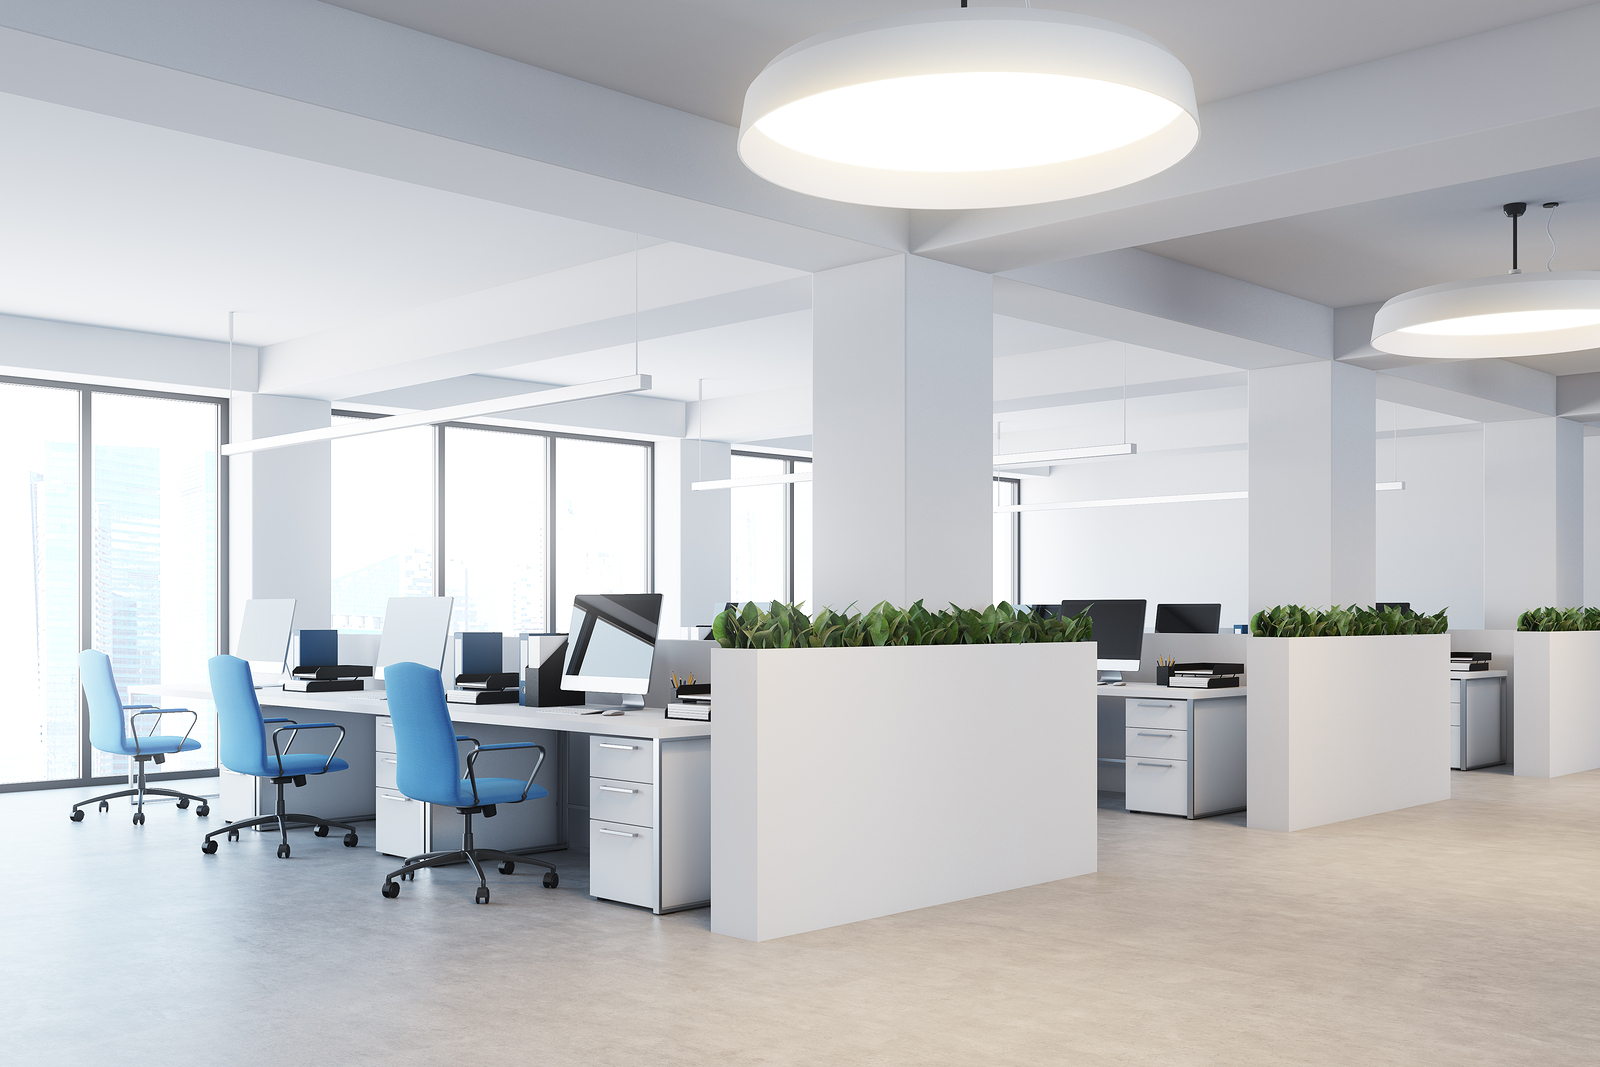 White office space inside commercial building with concrete floors